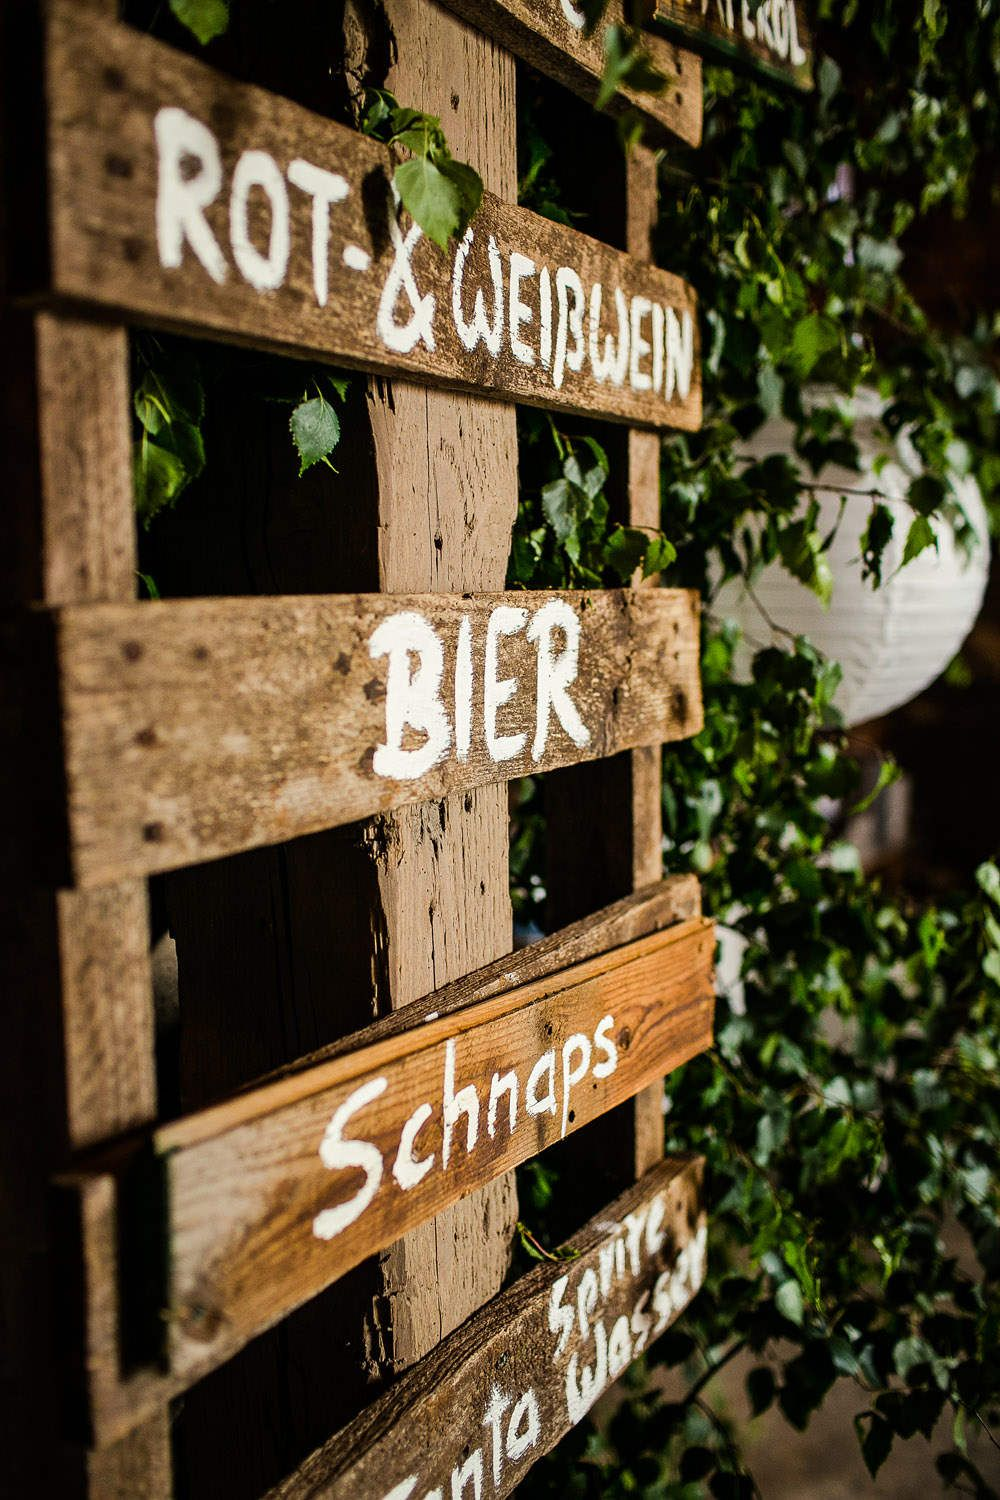 hochzeit diy getr nke schild selbermachen paletten bar schild diy blogstlove. Black Bedroom Furniture Sets. Home Design Ideas